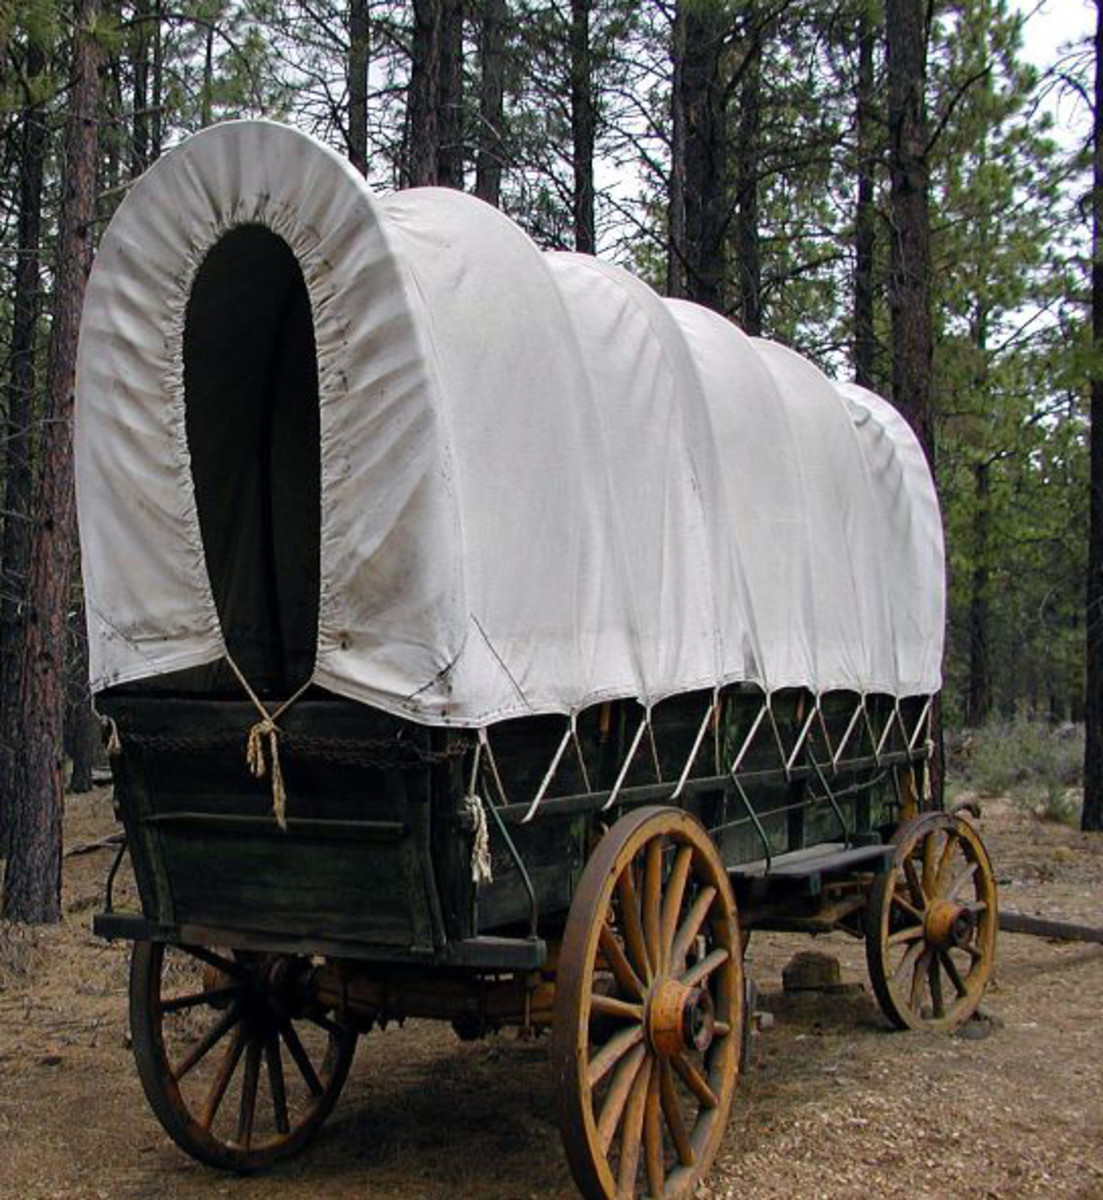 This wagon looks a lot like the one our Weston family took to St. Louis, Missouri